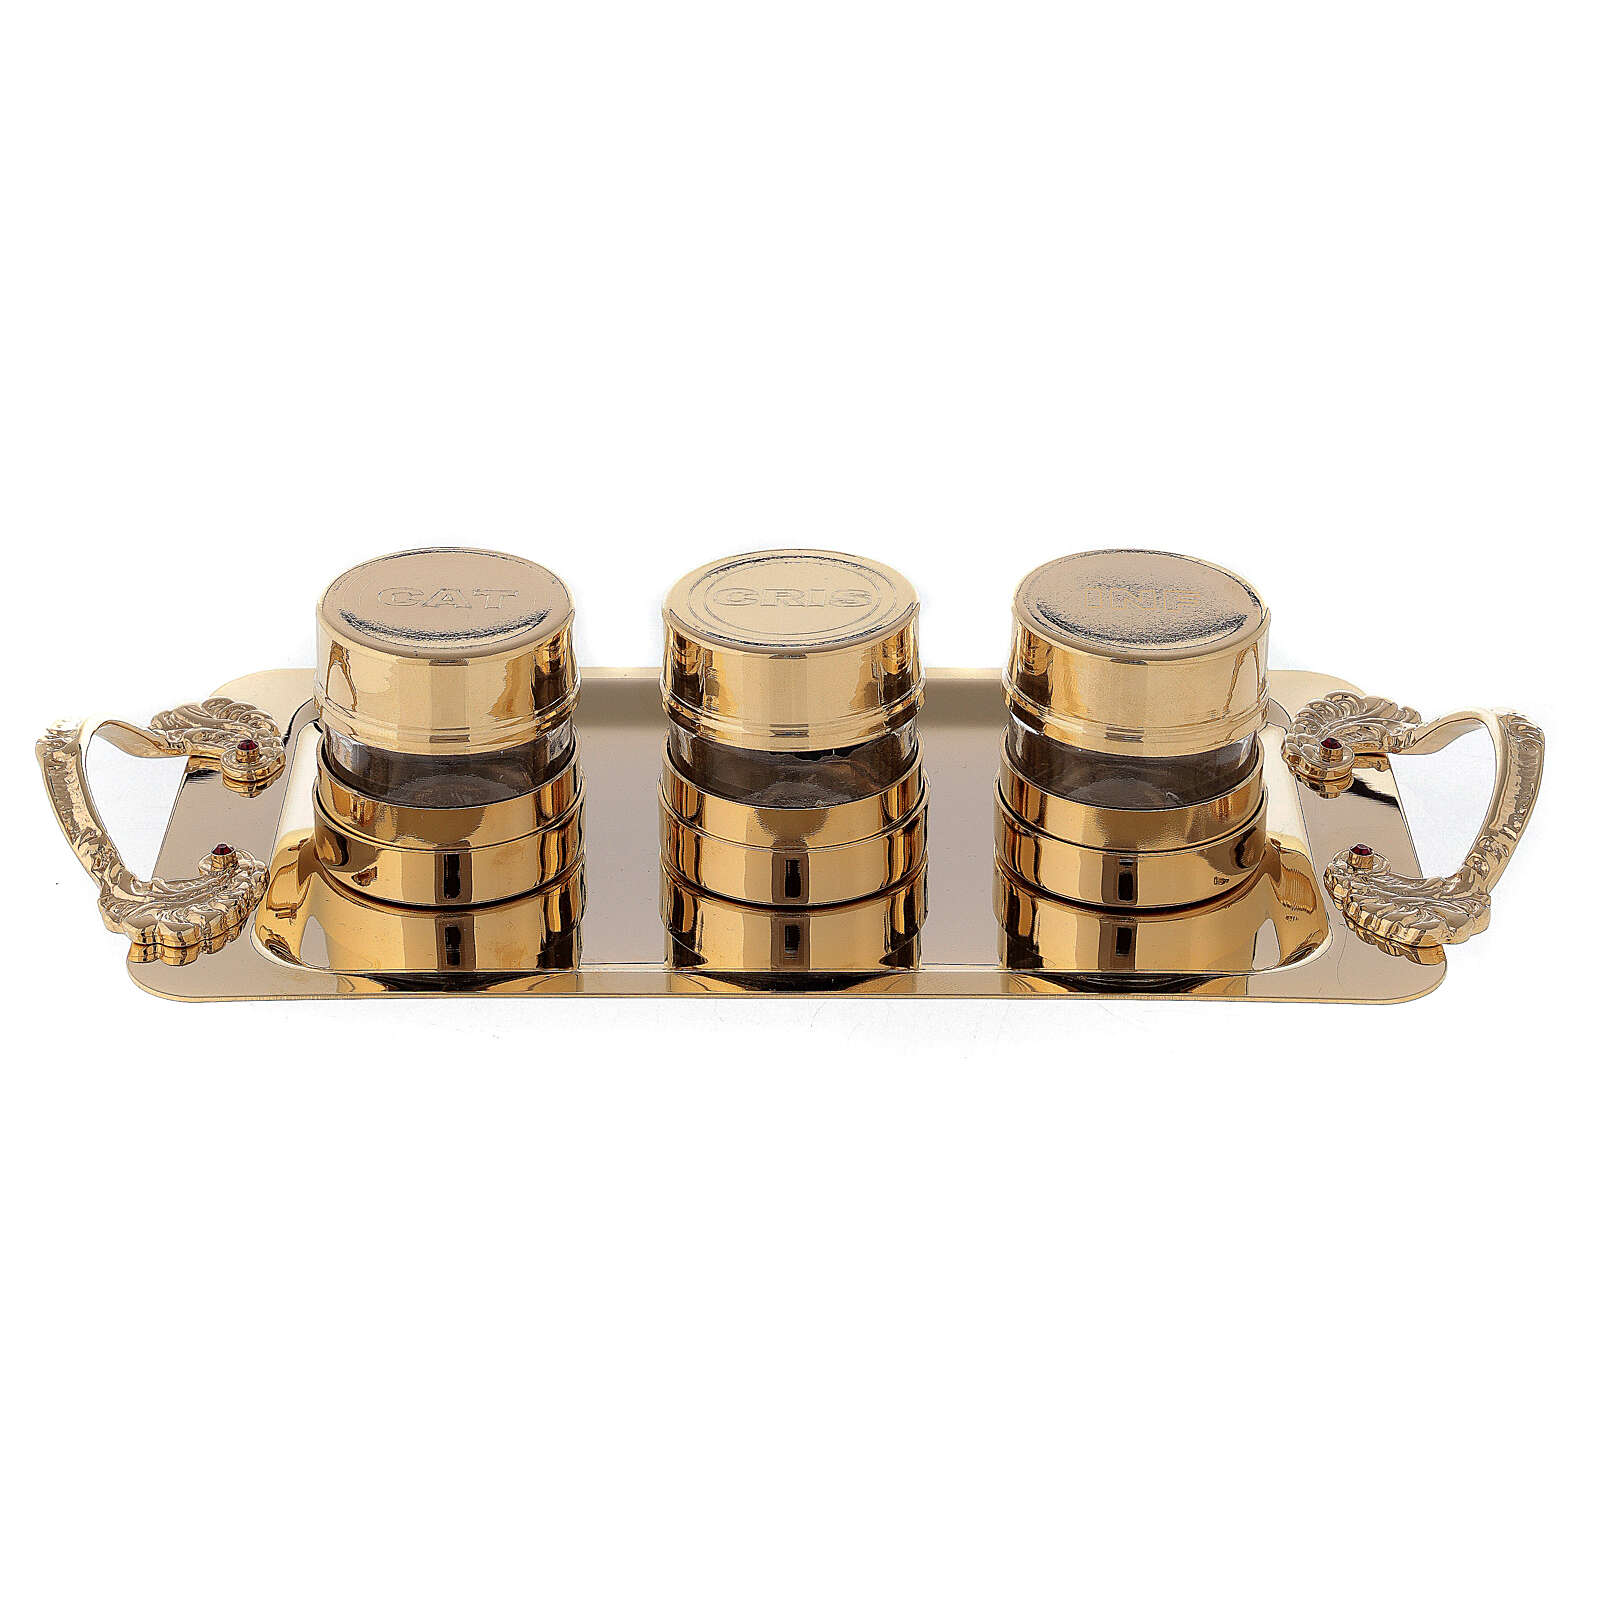 Triple oil stock in 24-karat gold plated brass 4